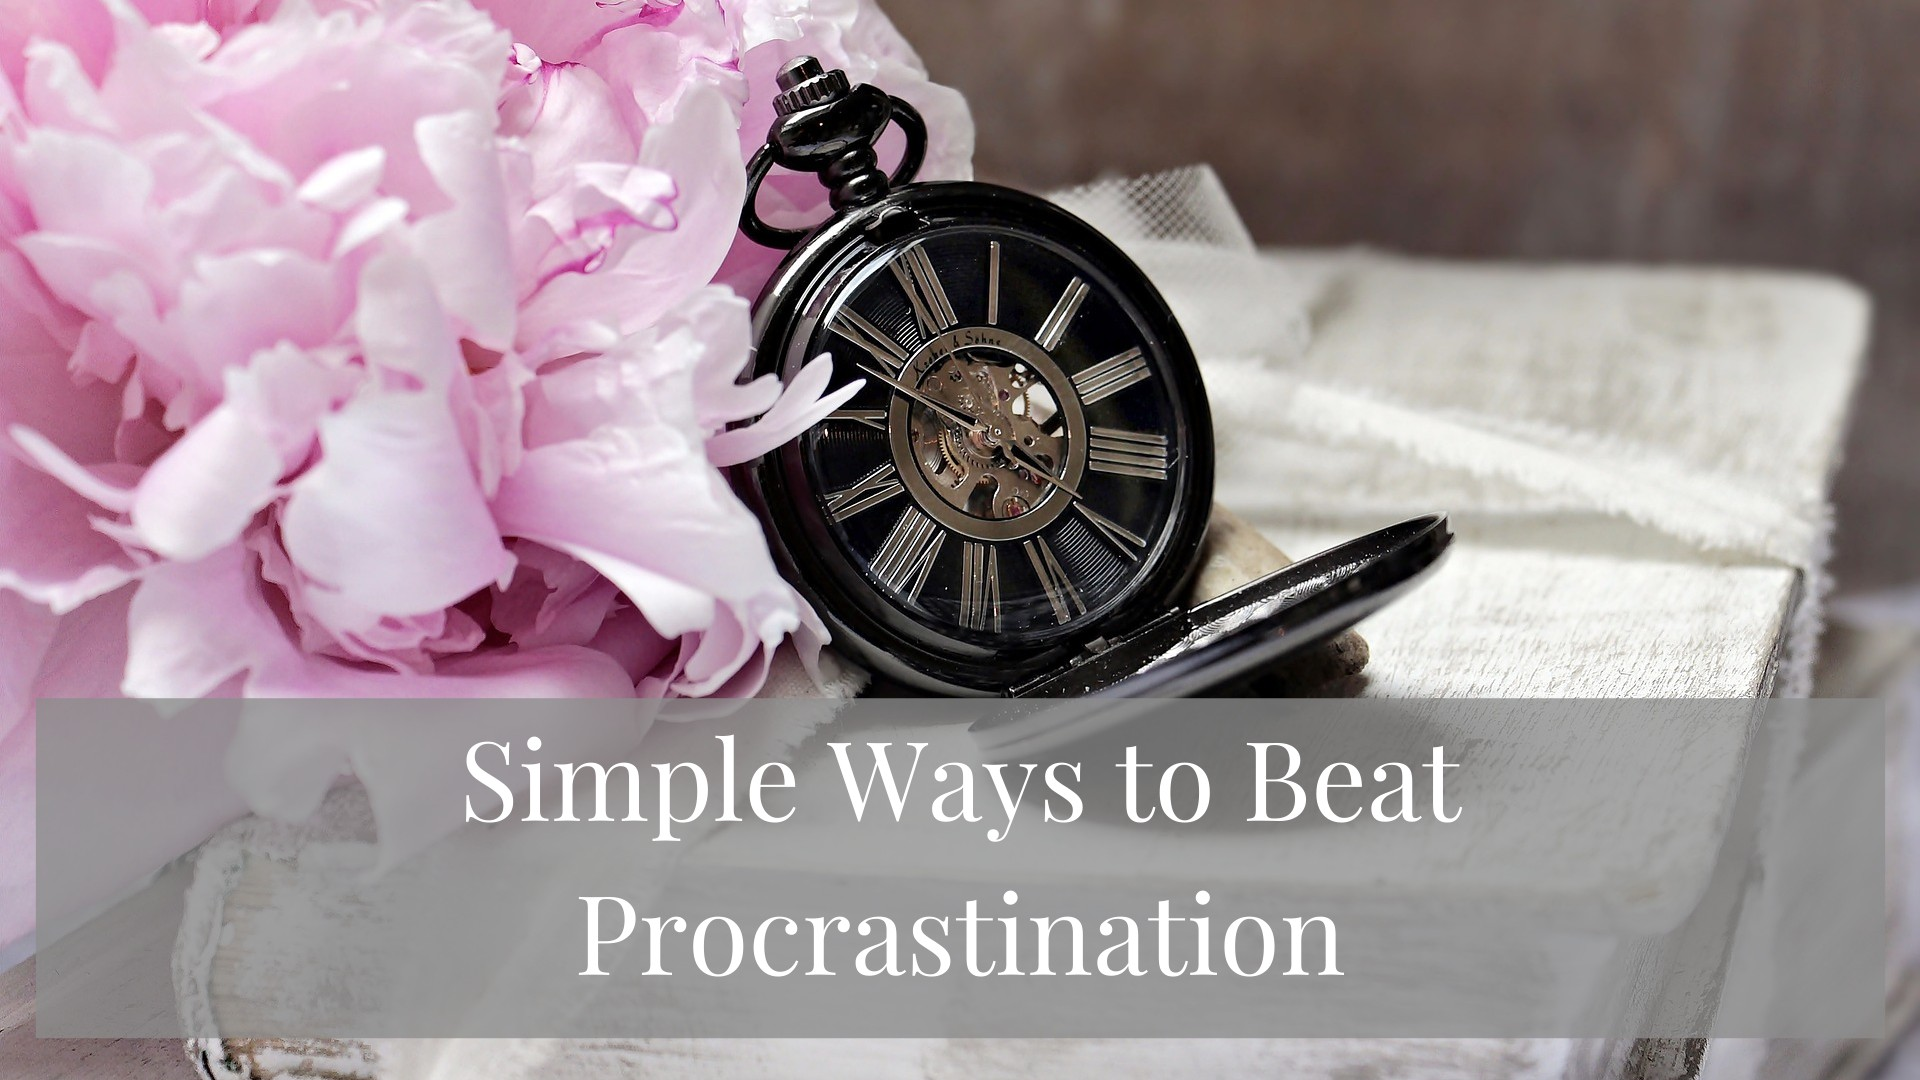 Simple Ways to Beat Procrastination